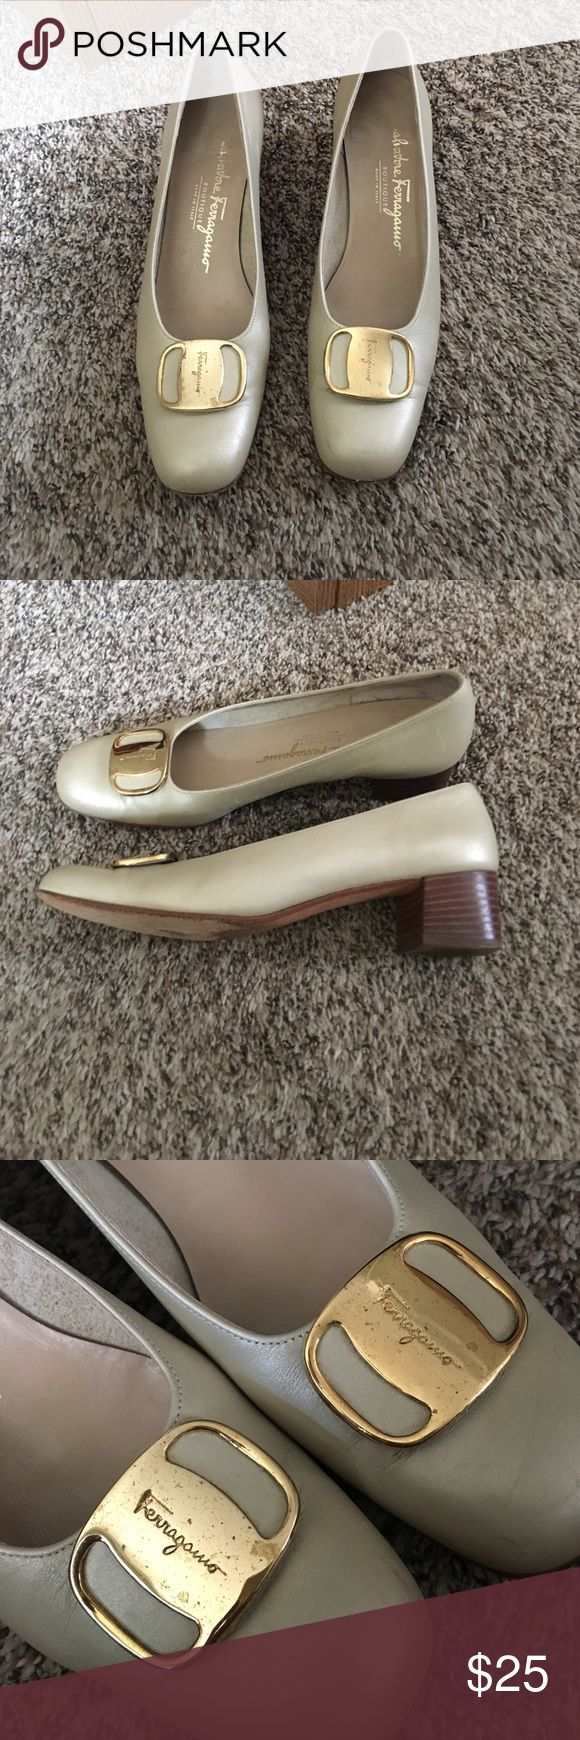 Ferragamo Heels Gorgeous Authentic Ferragamo Heels! Marking on the bottom that says 60$ other than that and normal wear they are in great condition. A bit narrow. Buckles on top could be shined for cheap to look better. Ferragamo Shoes Heels